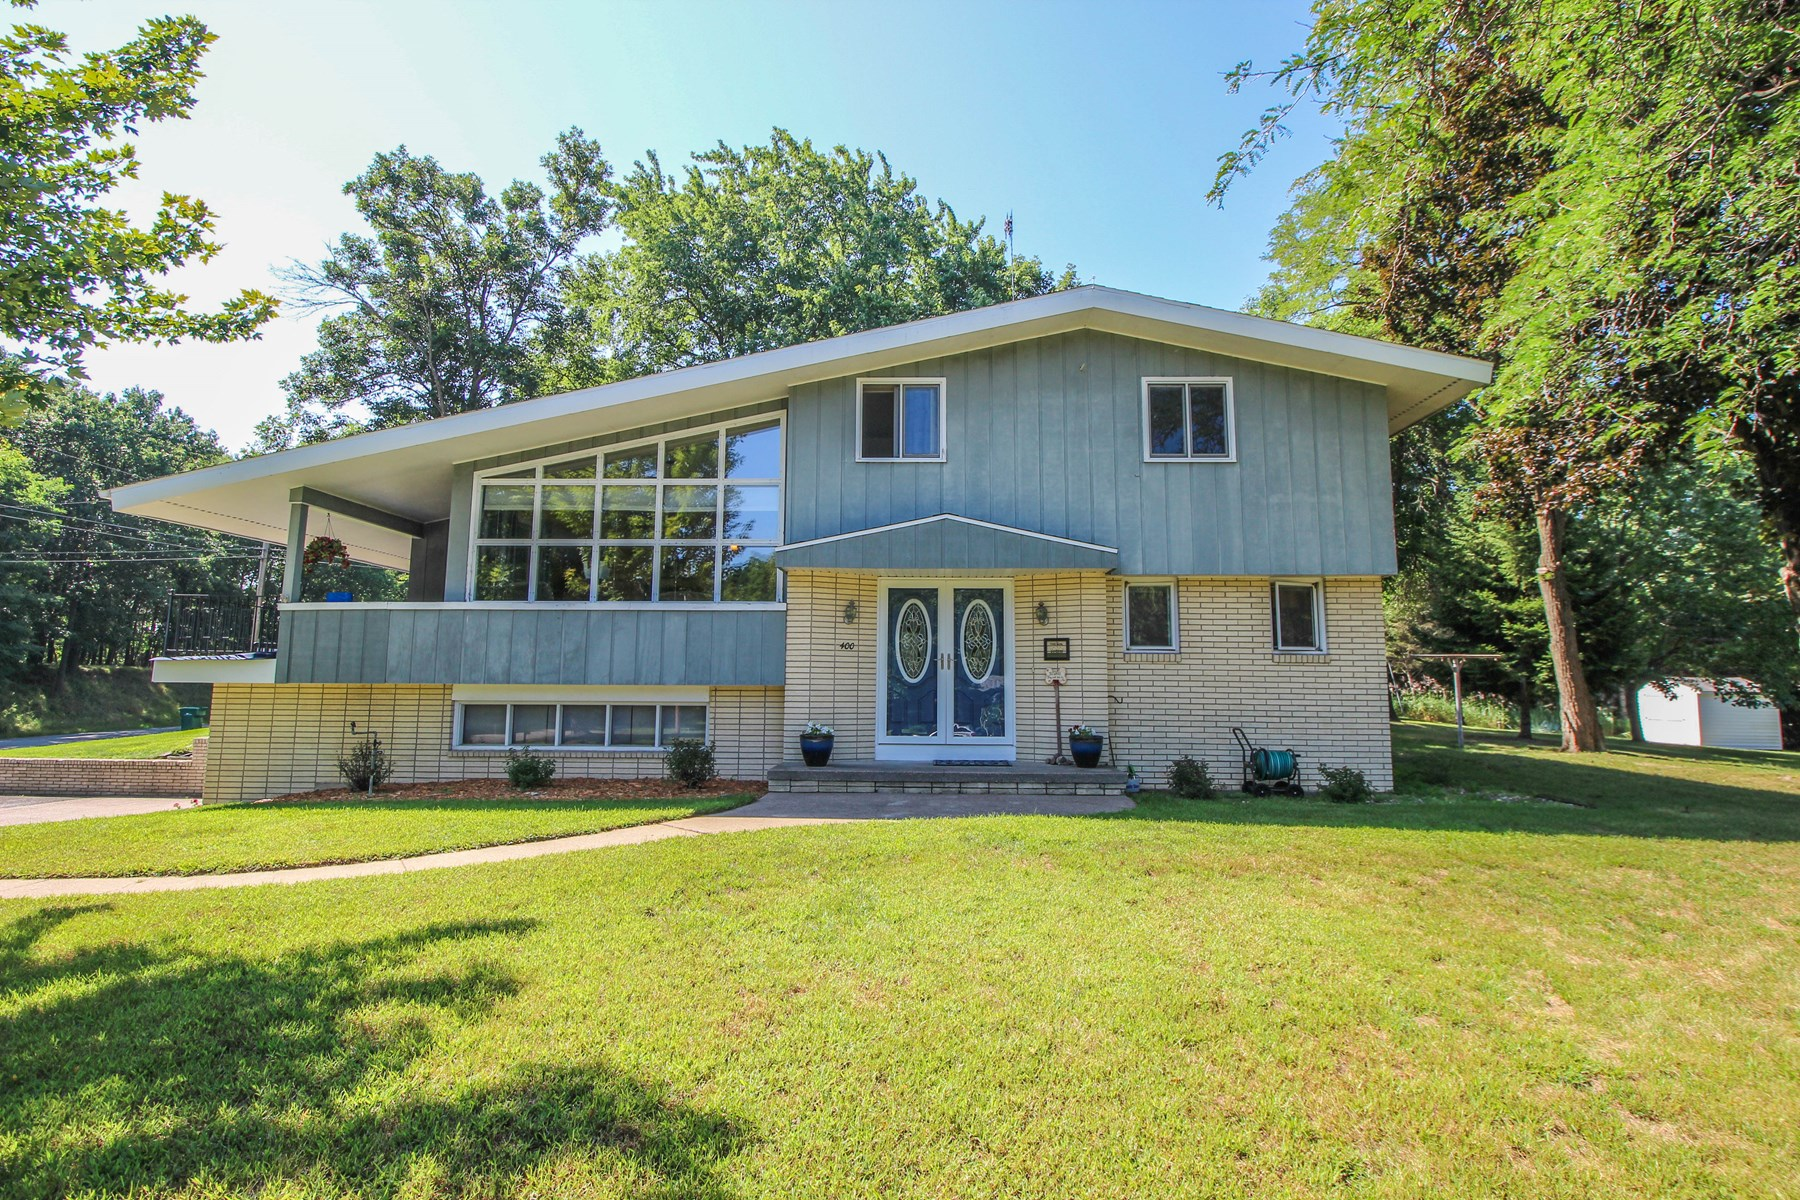 Home for sale in City of Waupaca, WI